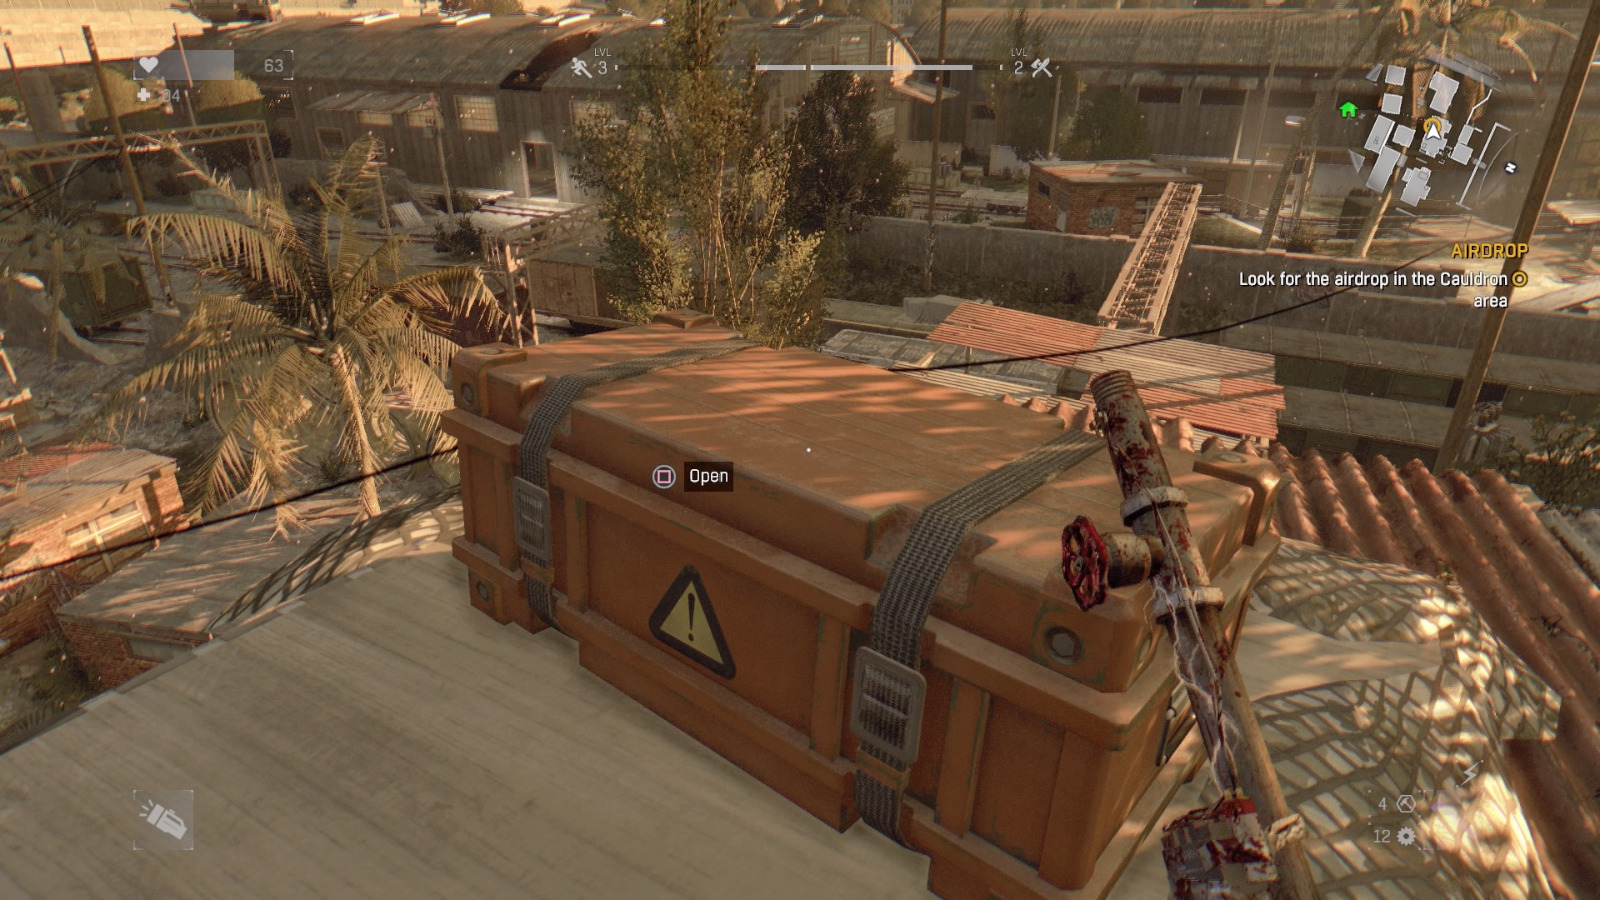 Airdrop dying light walkthrough neoseeker airdrop first airdropg ccuart Images